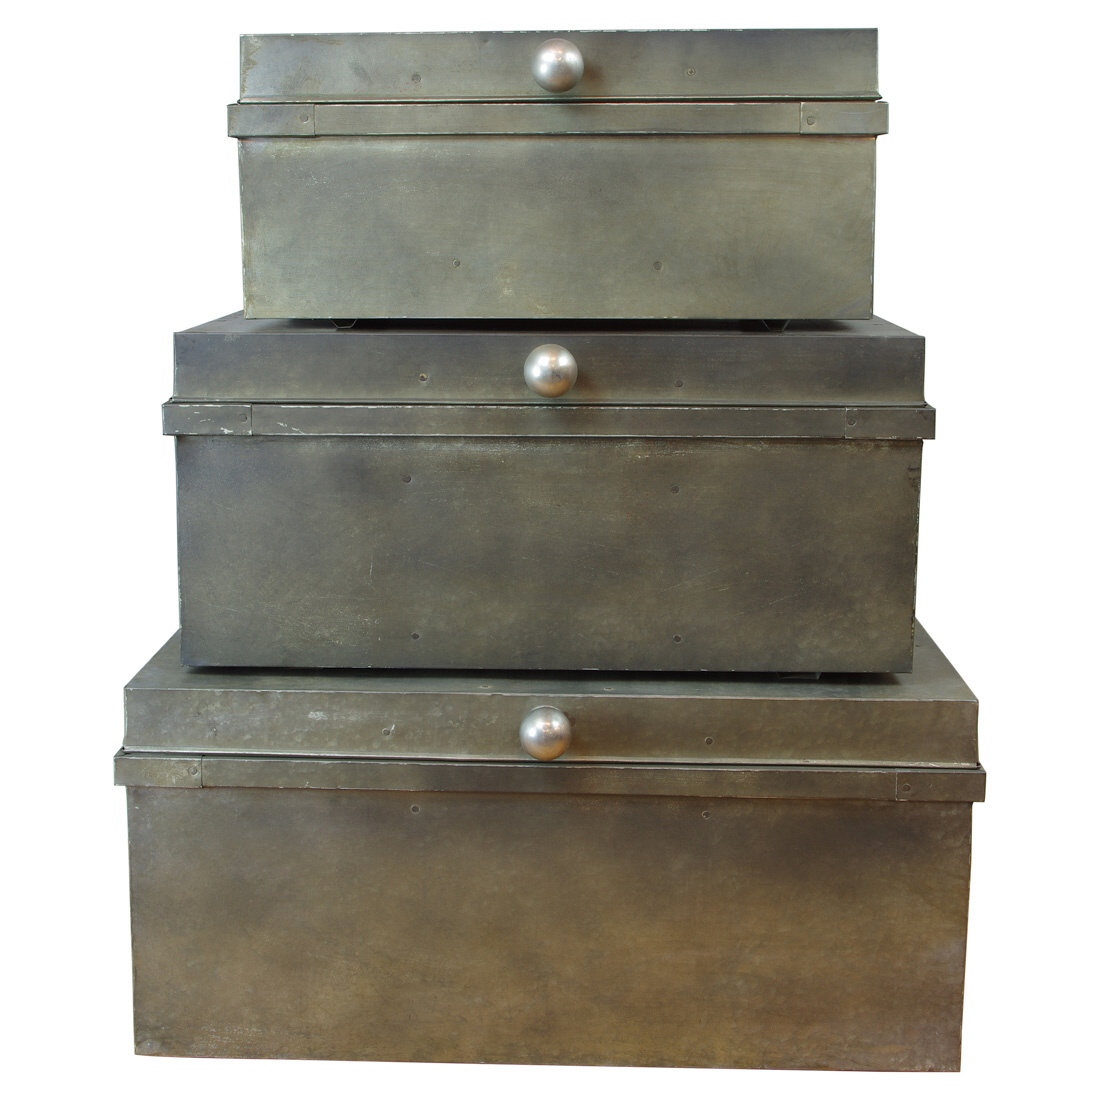 Metal Factory Nesting Boxes SET 3pcs Trunks Iron Hand Made Old Industrial